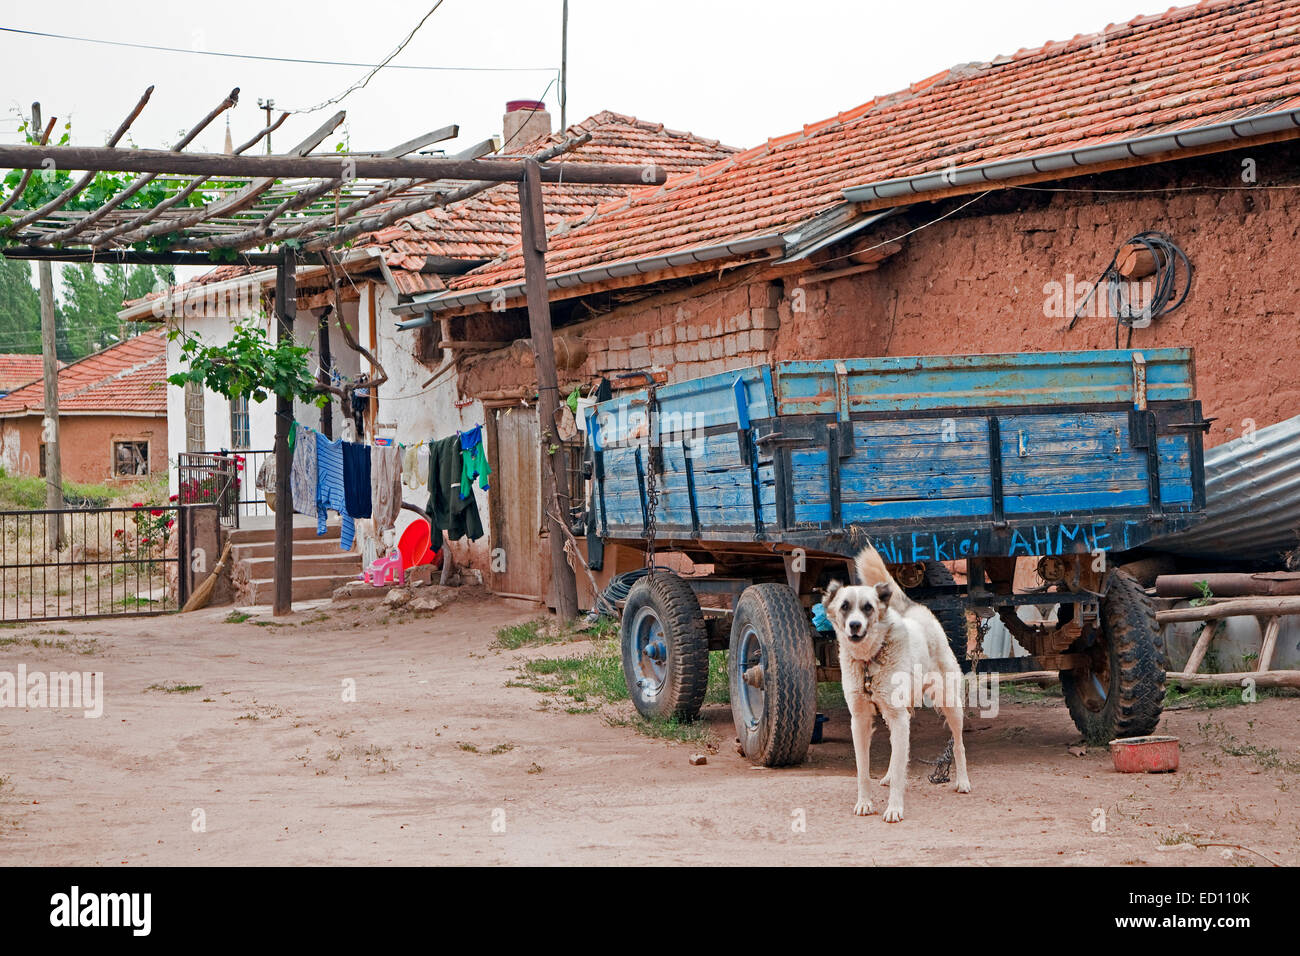 Old wooden cart and dog in agricultural village in rural Western Turkey - Stock Image